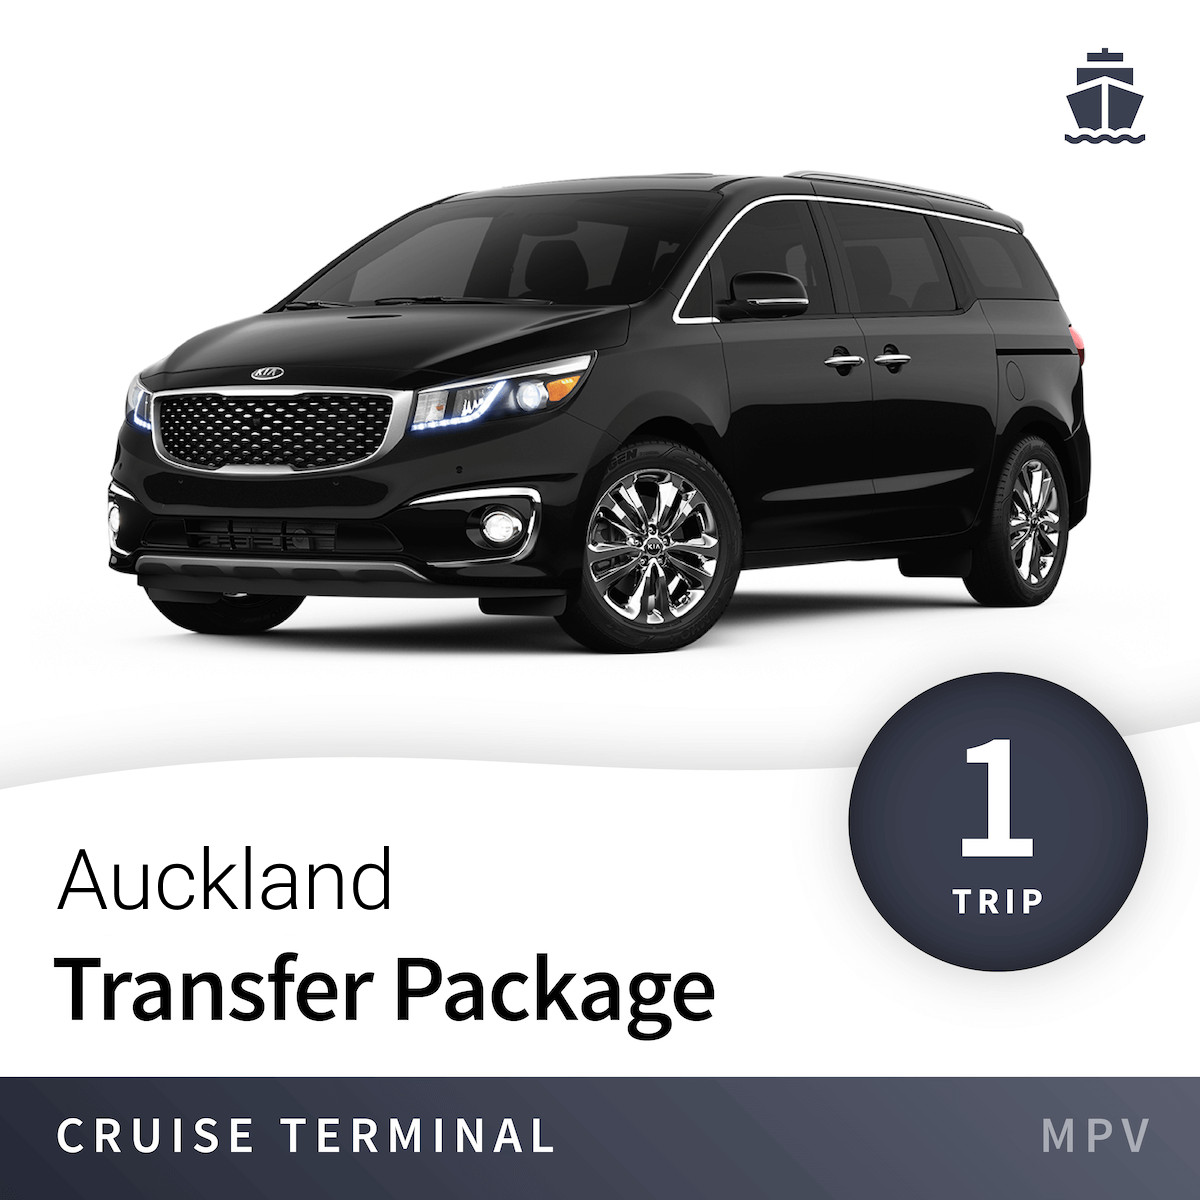 Auckland Cruise Terminal Transfer Package – MPV (1 Trip) 1